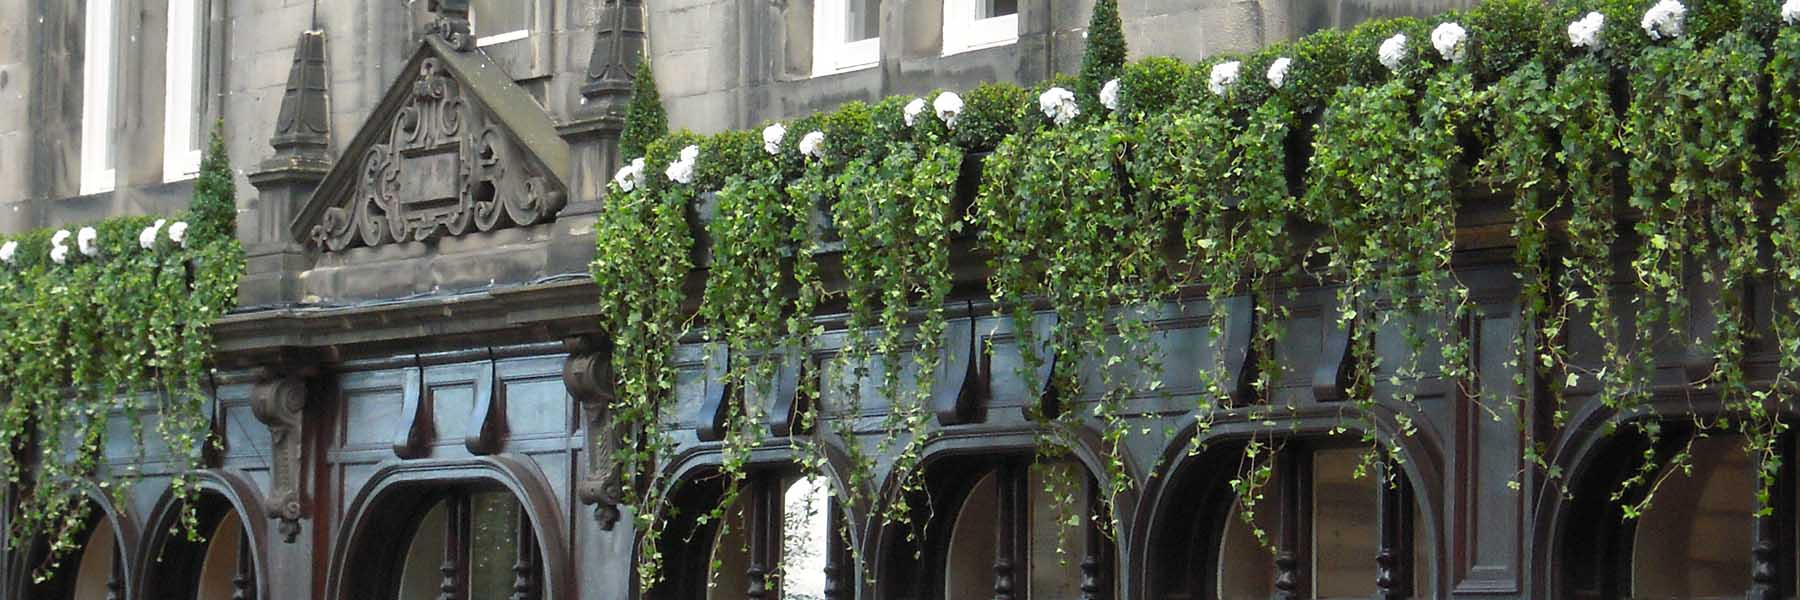 Fraser Suites Edinburgh decorated with high level live Buxus topiary and trailing ivies interspersed with white flowers, Outdoor Dining